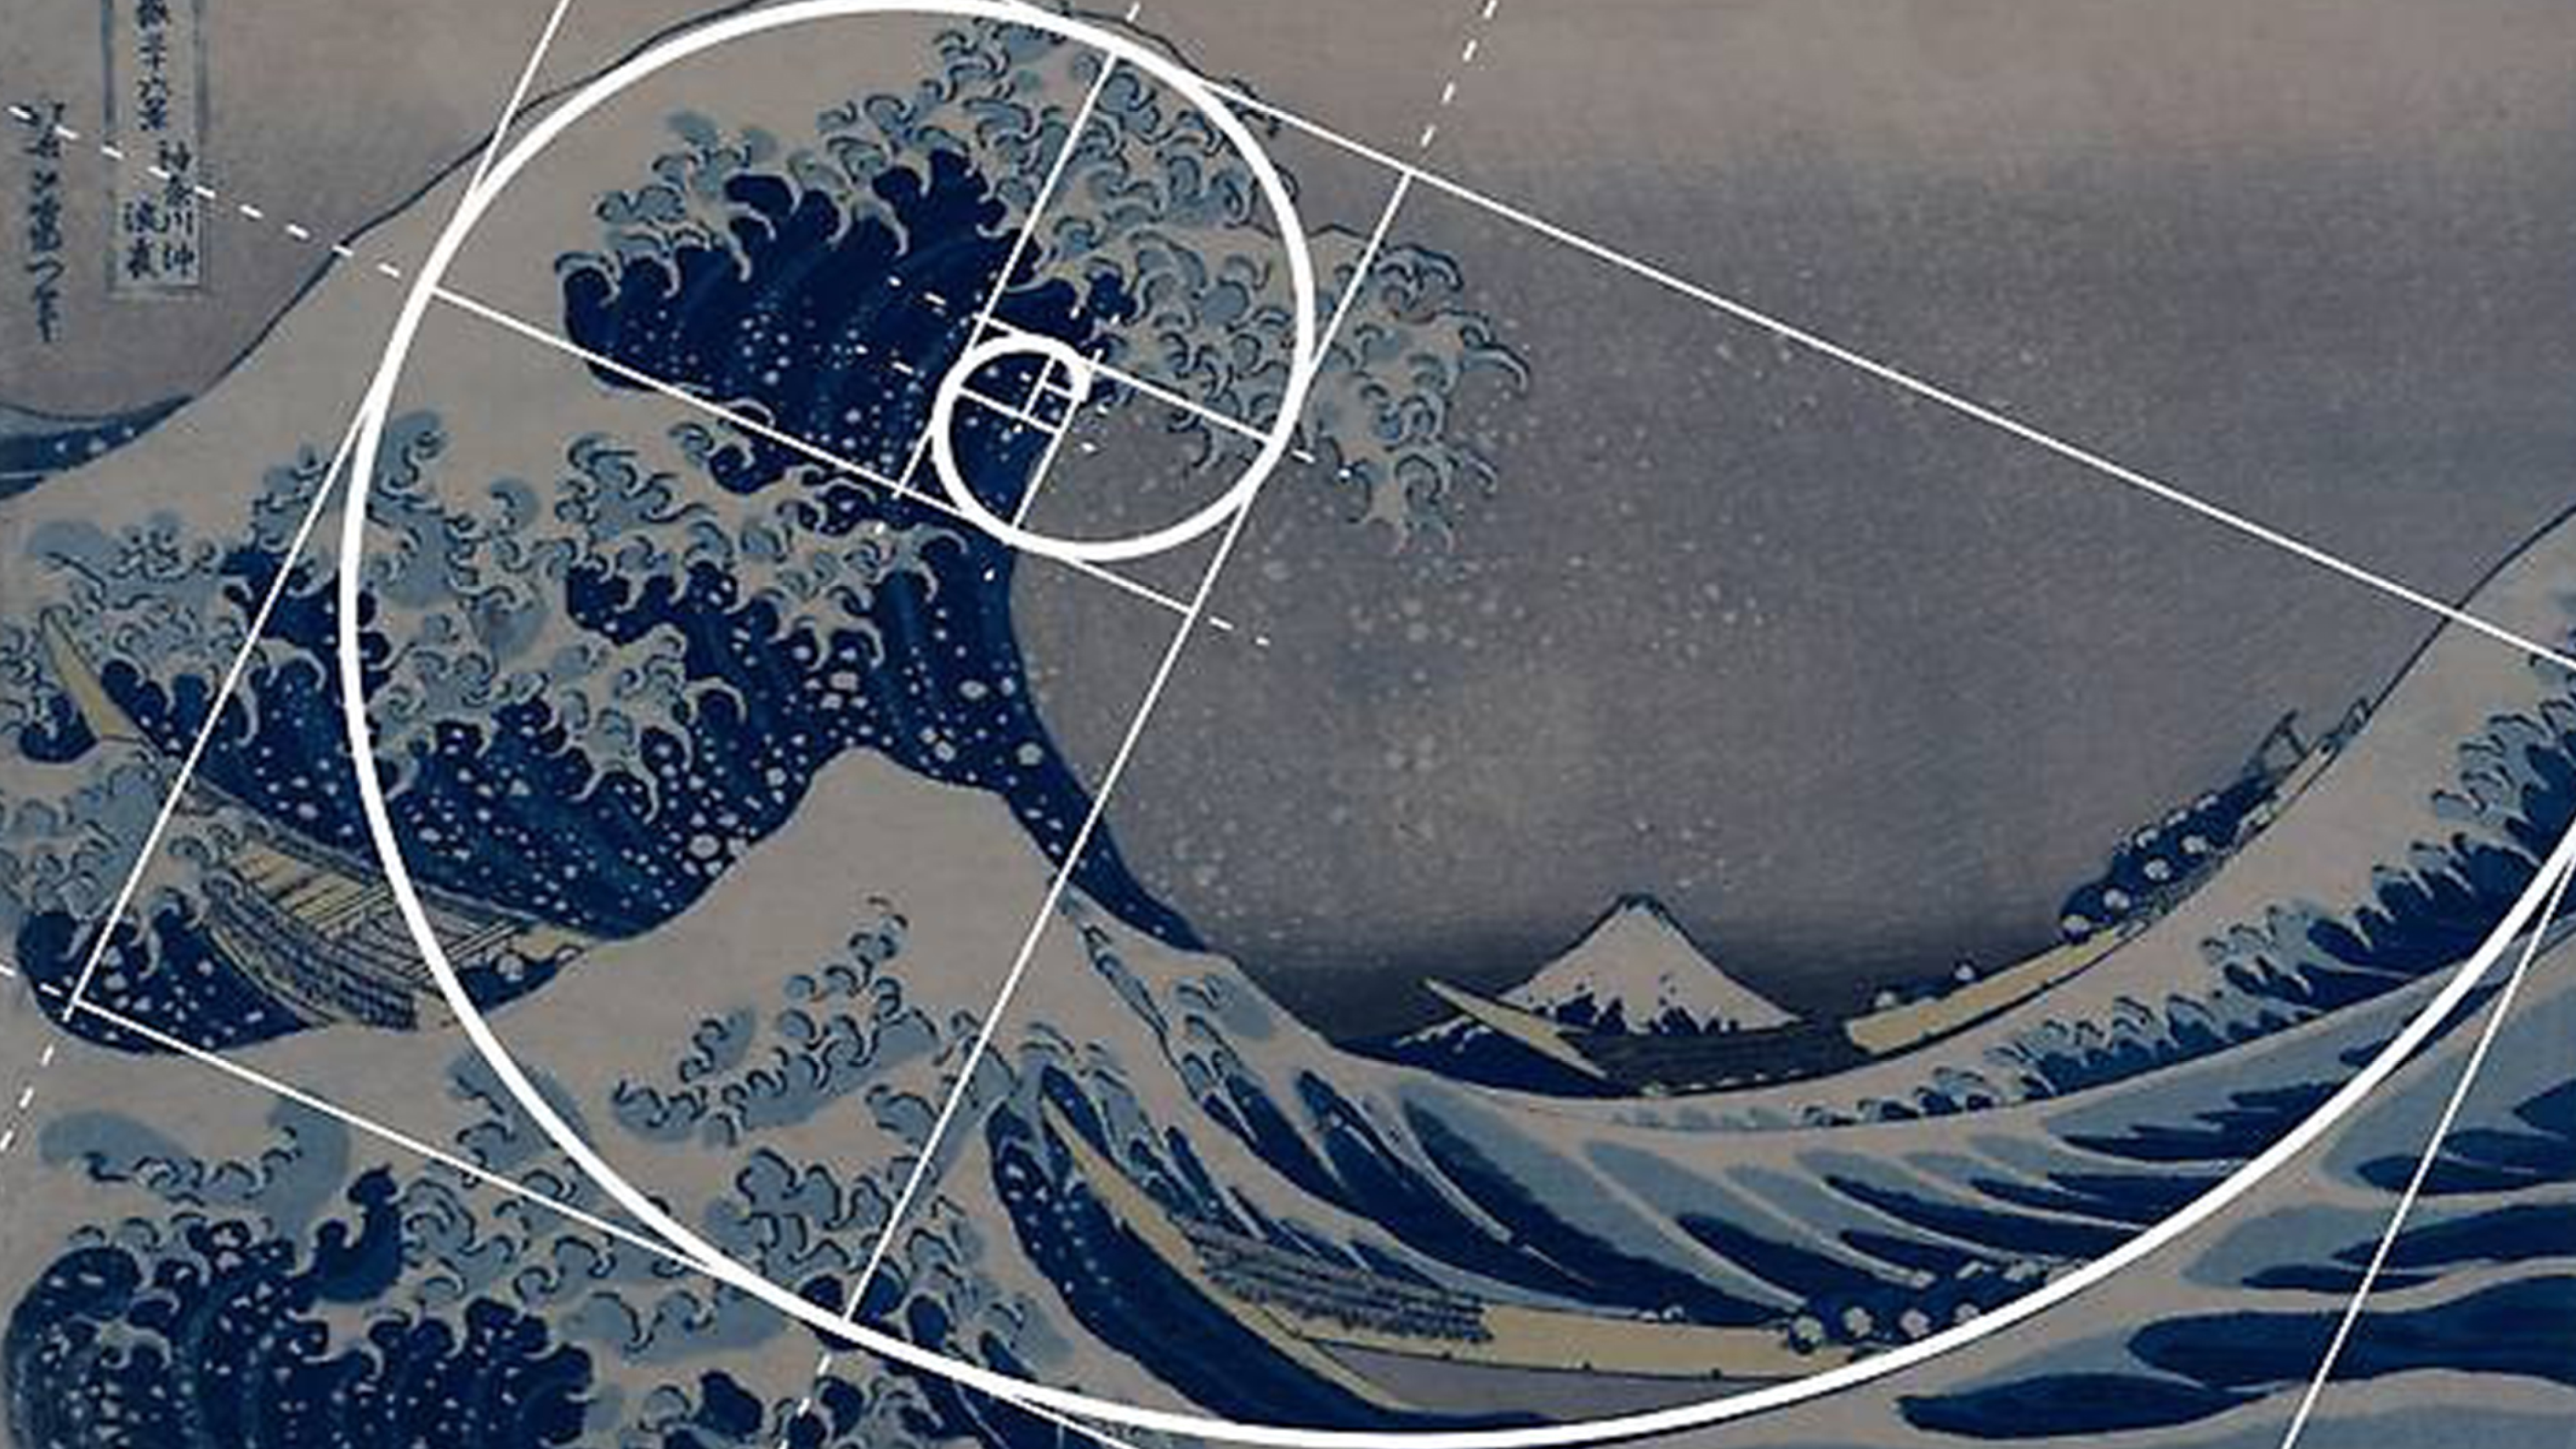 DESIGN PRINCIPLES - GOLDEN RATIO